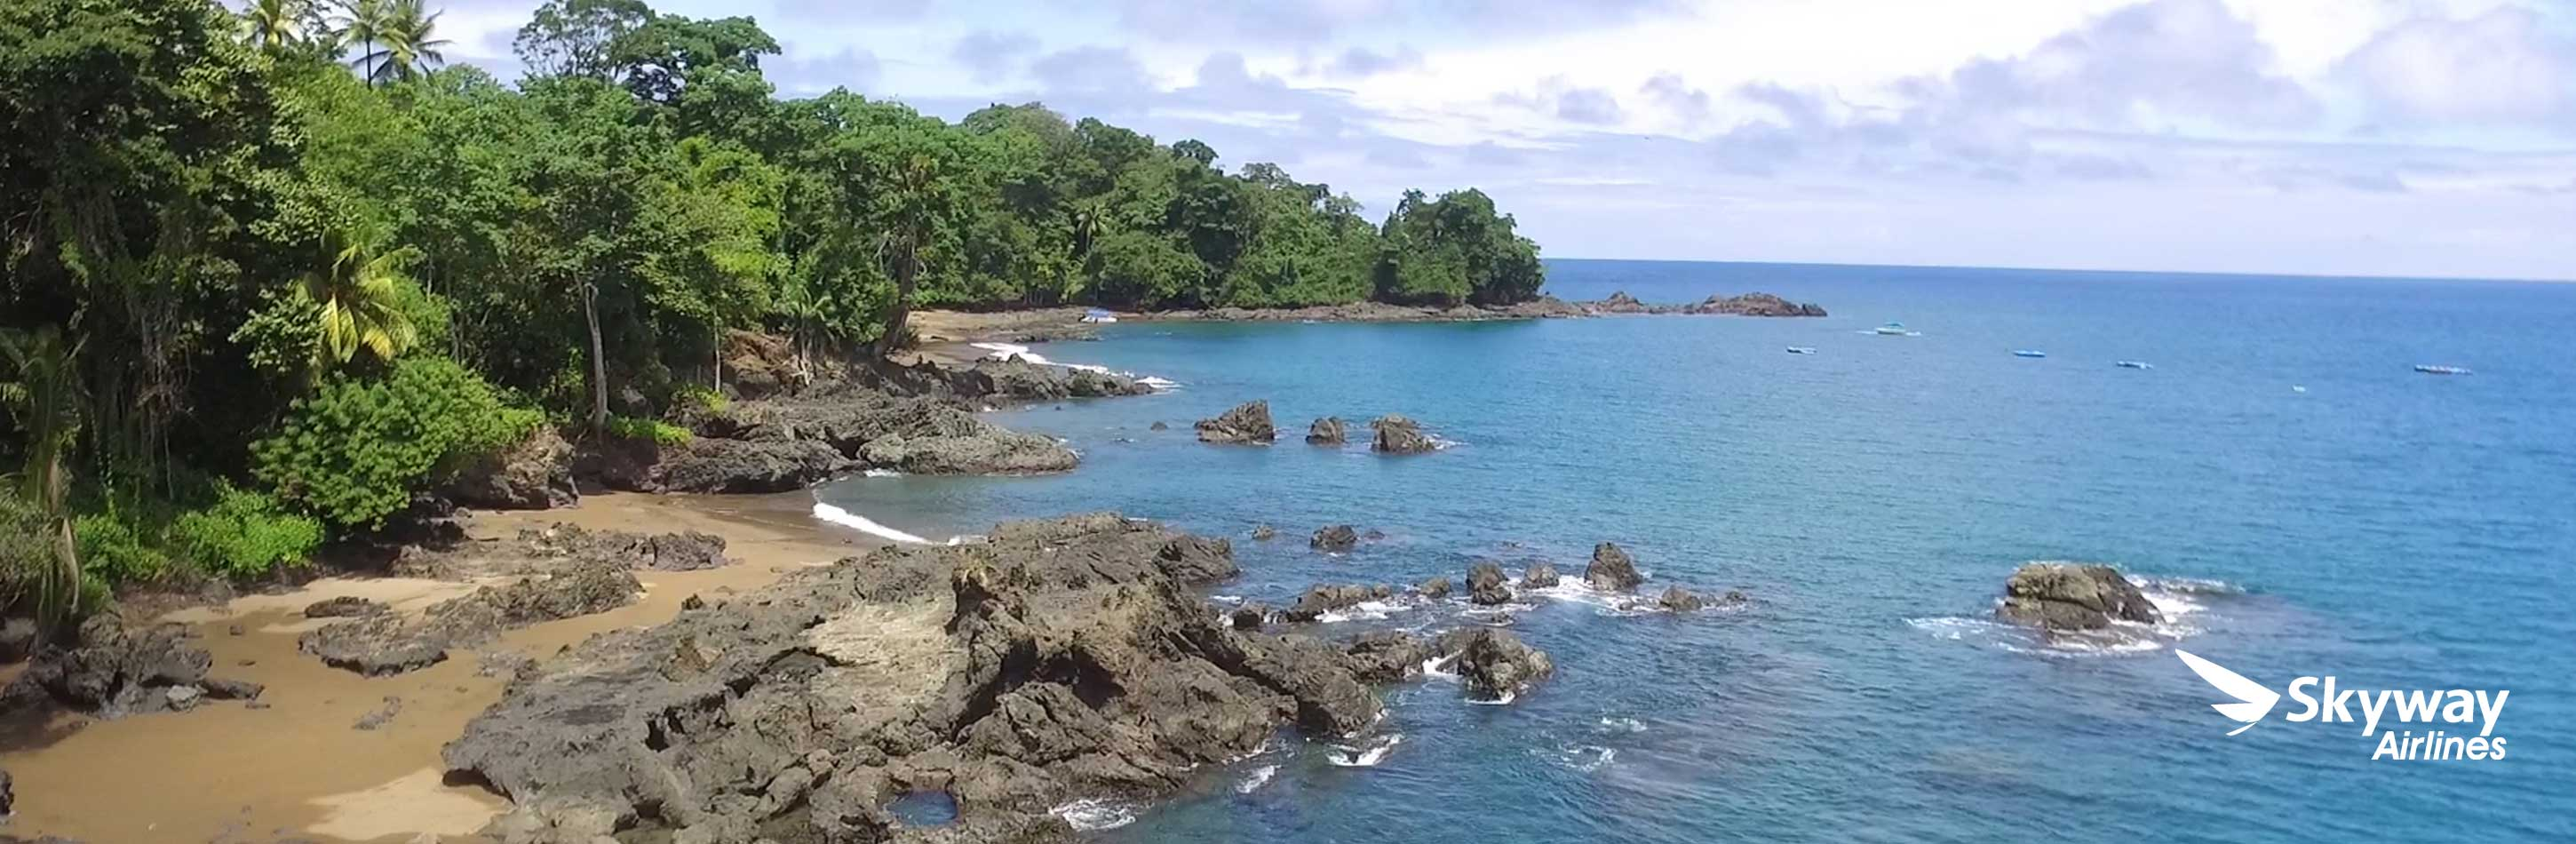 Drake Bay, a paradise in the Pacific just 40 minutes away from San Jose